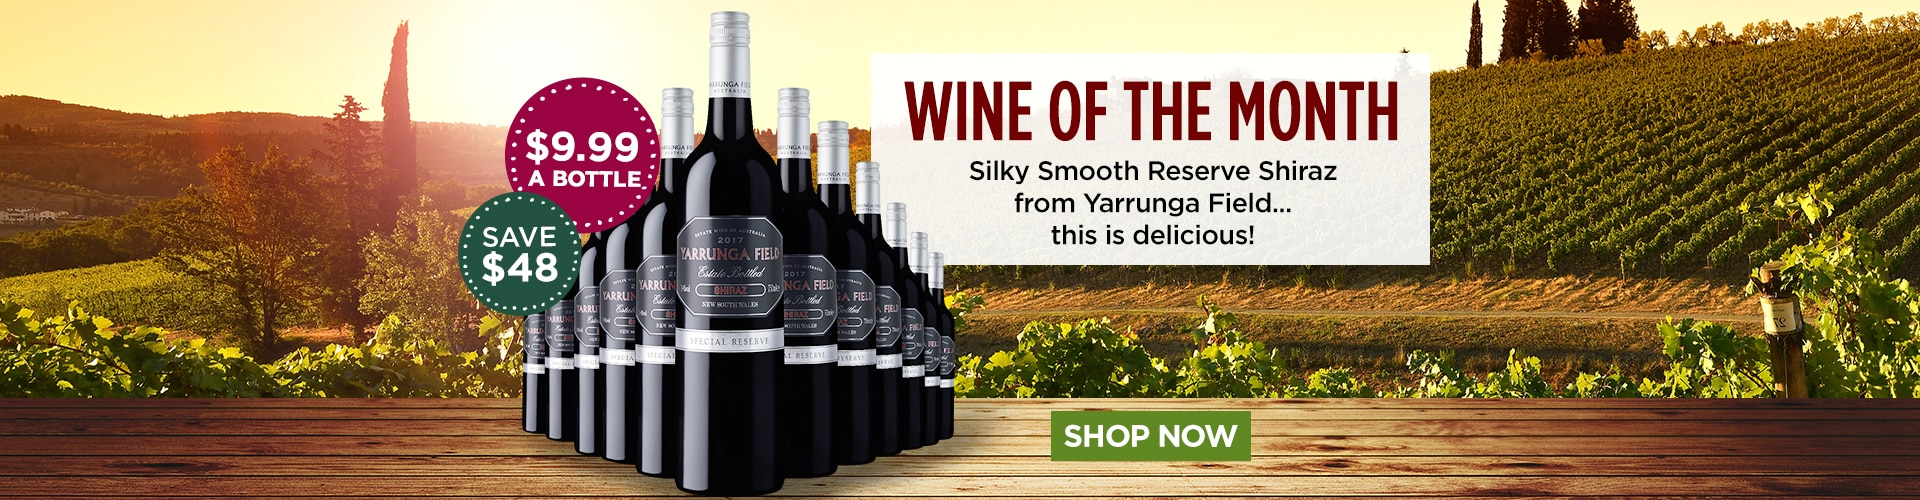 WINE OF THE MONTH - Only $9.99 a bottle!